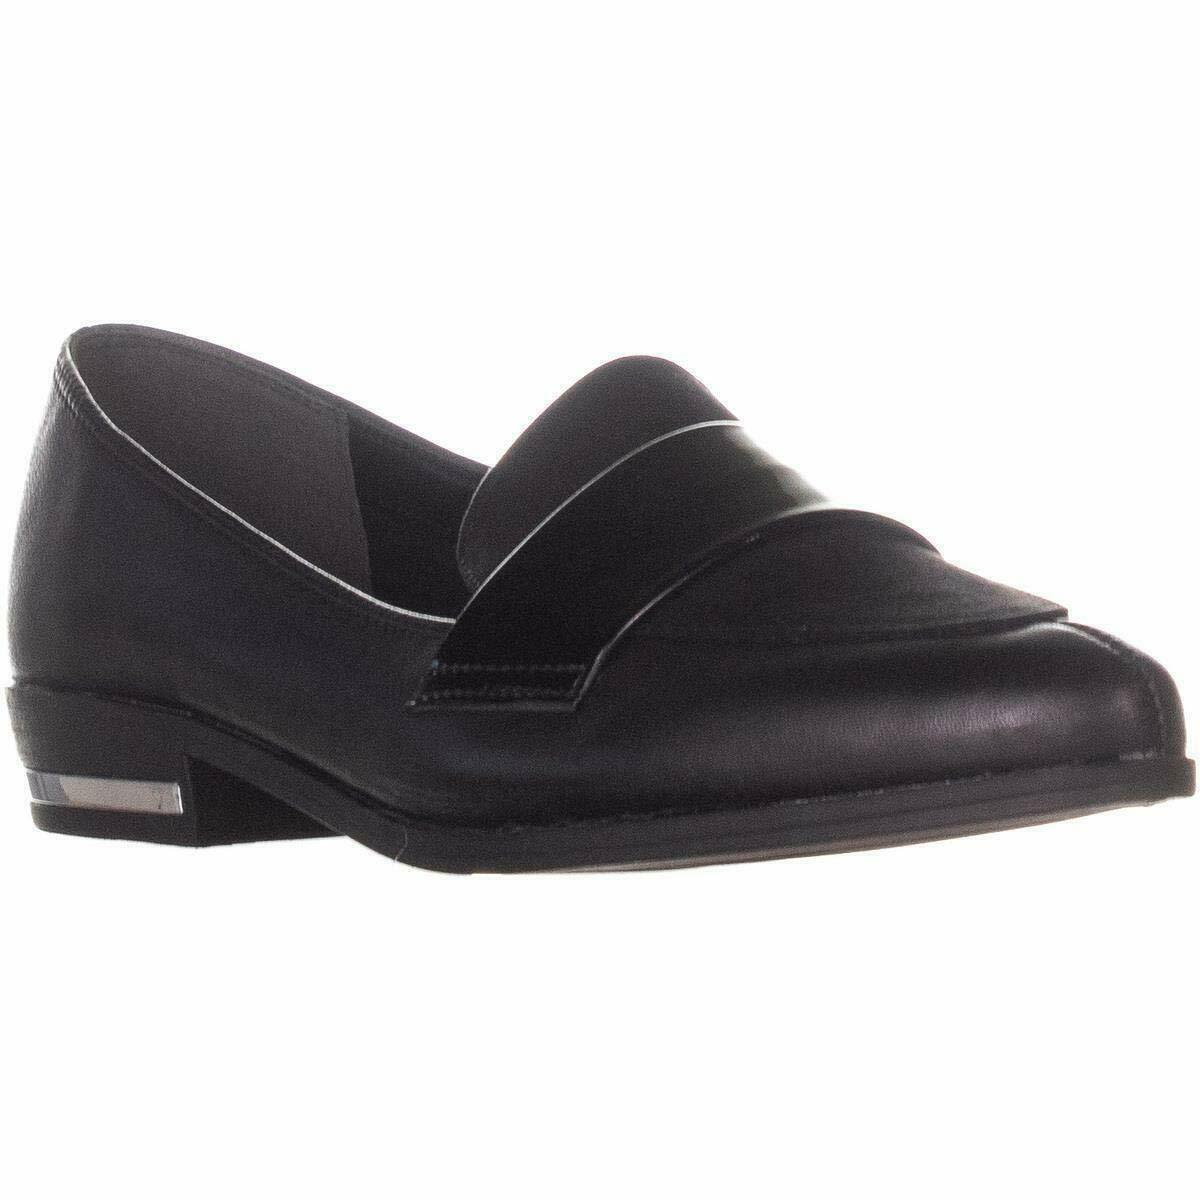 Bar III Womens Involve Pointed Toe Loafers, Black, Size 7.0 2Axn US